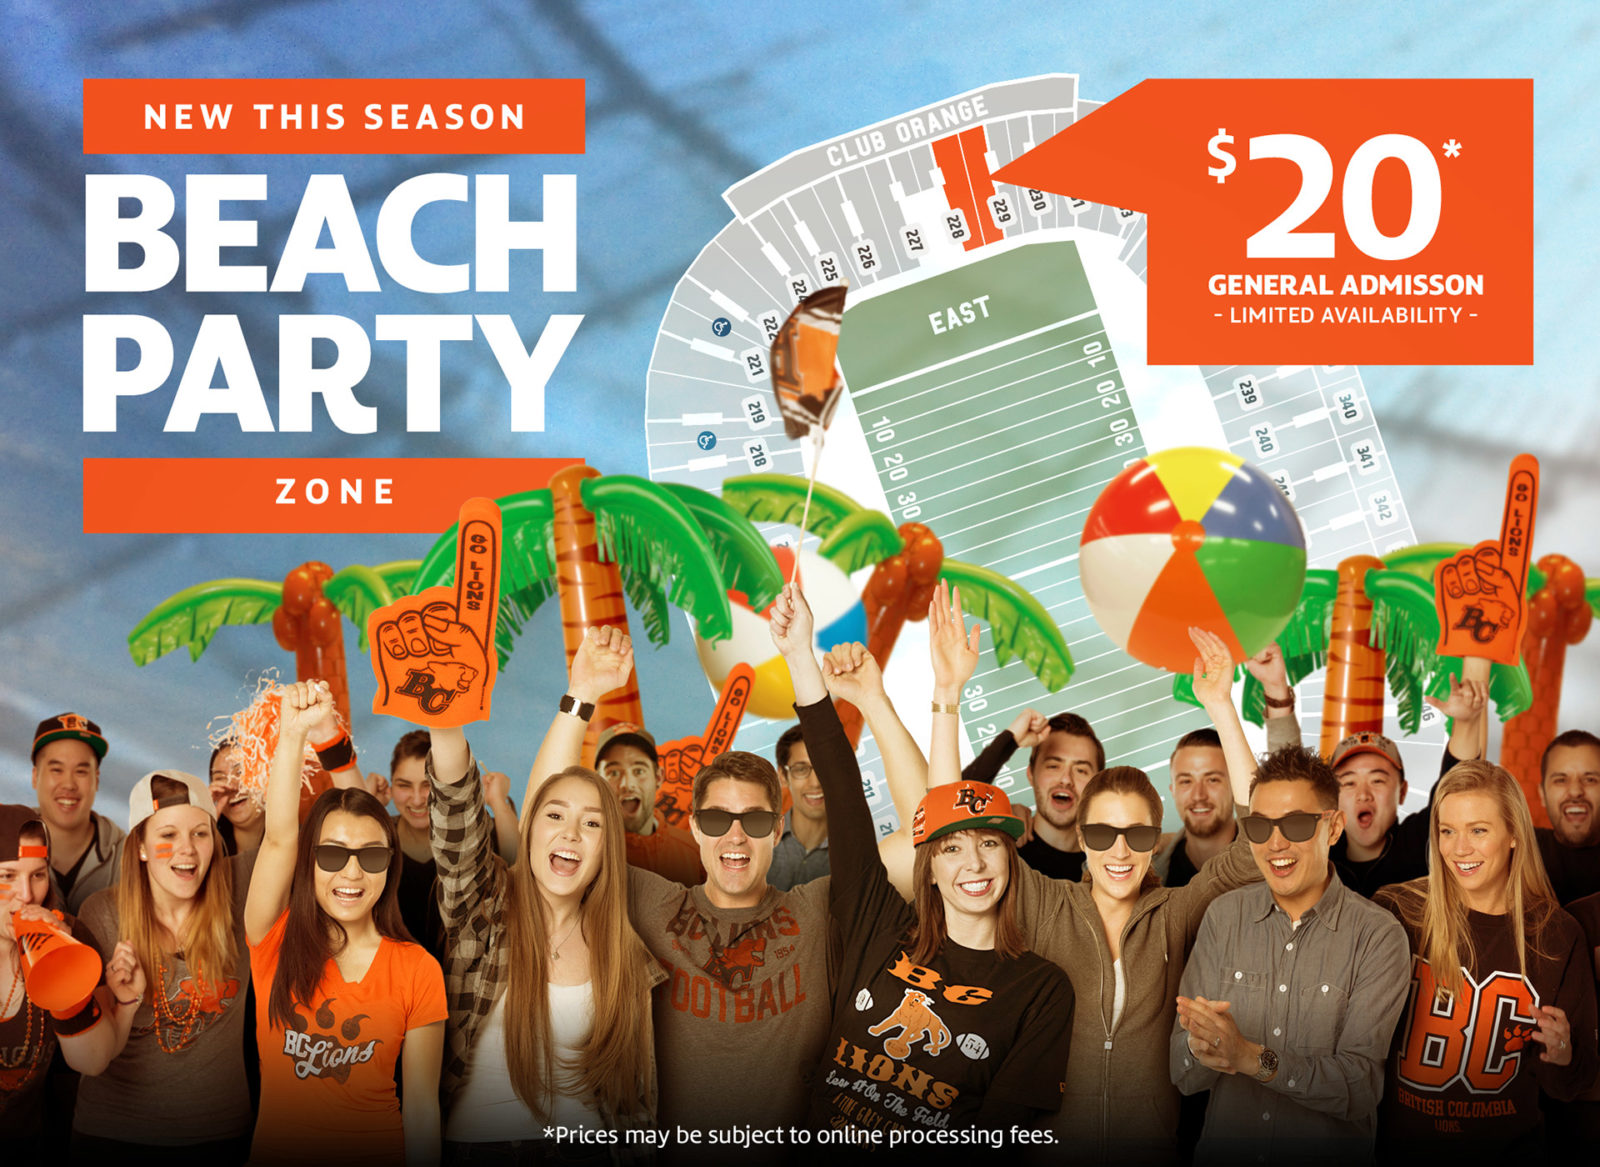 BC LIONS BEACH PARTY!